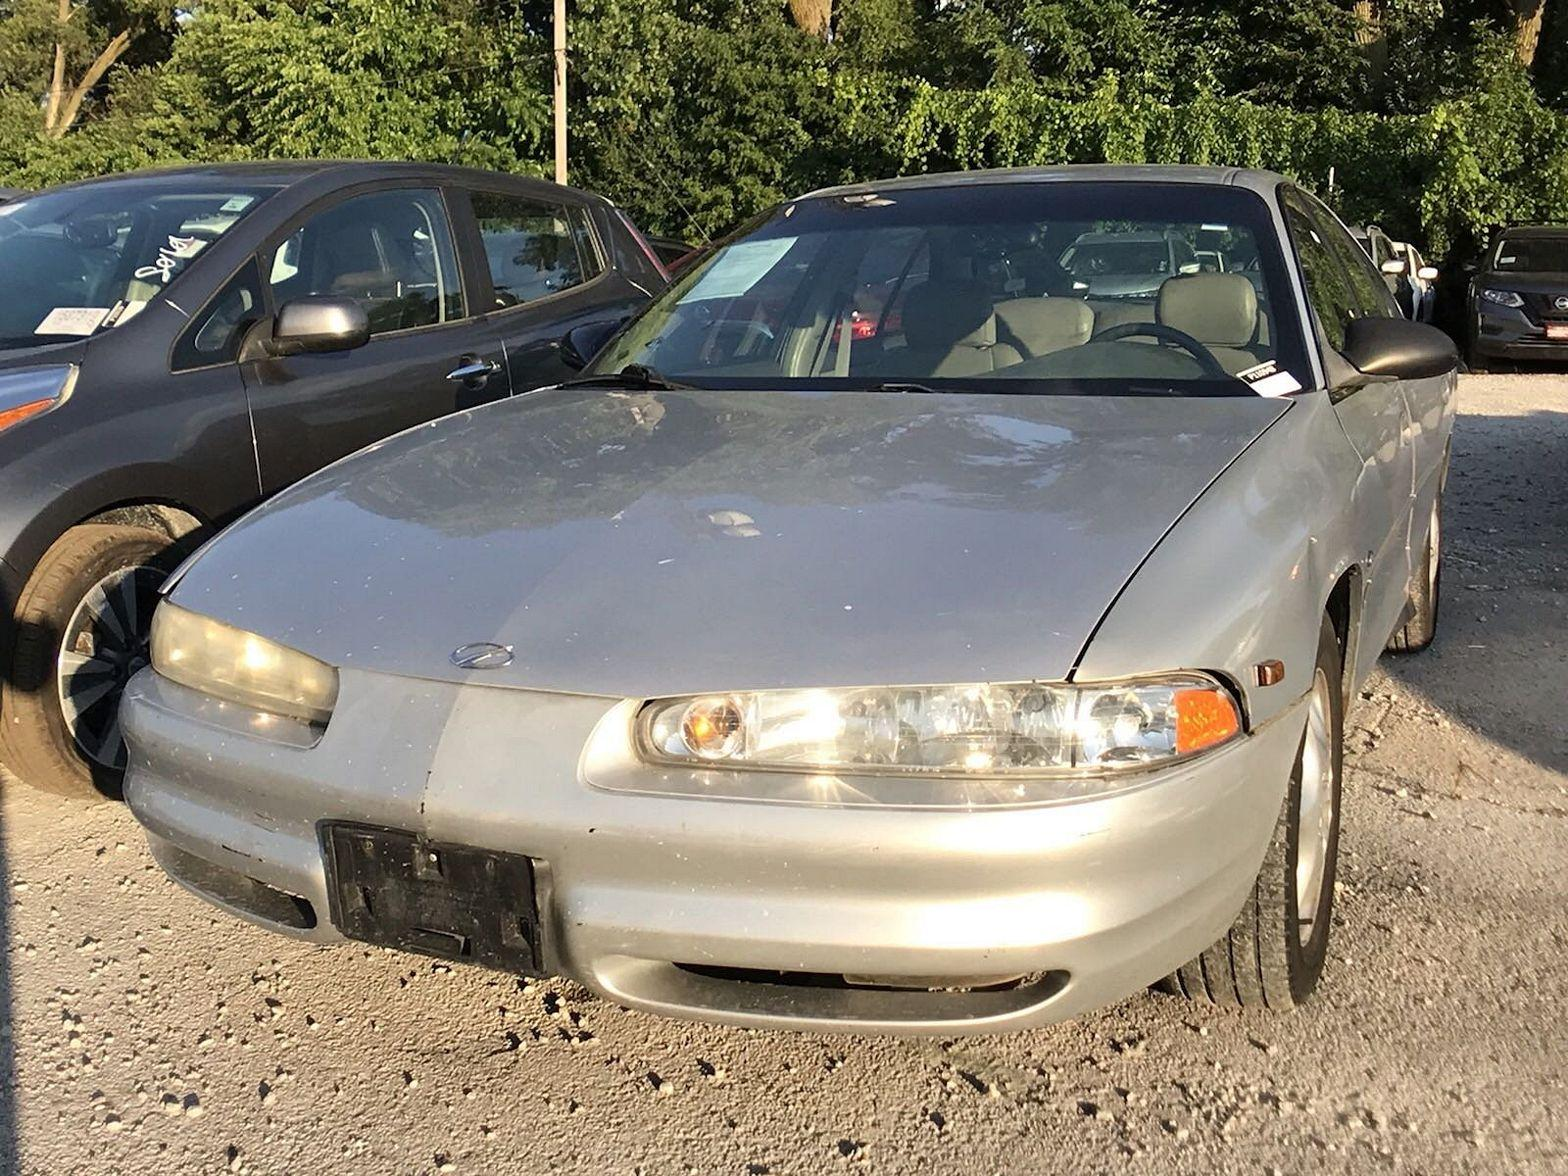 1999 Oldsmobile Intrigue $990